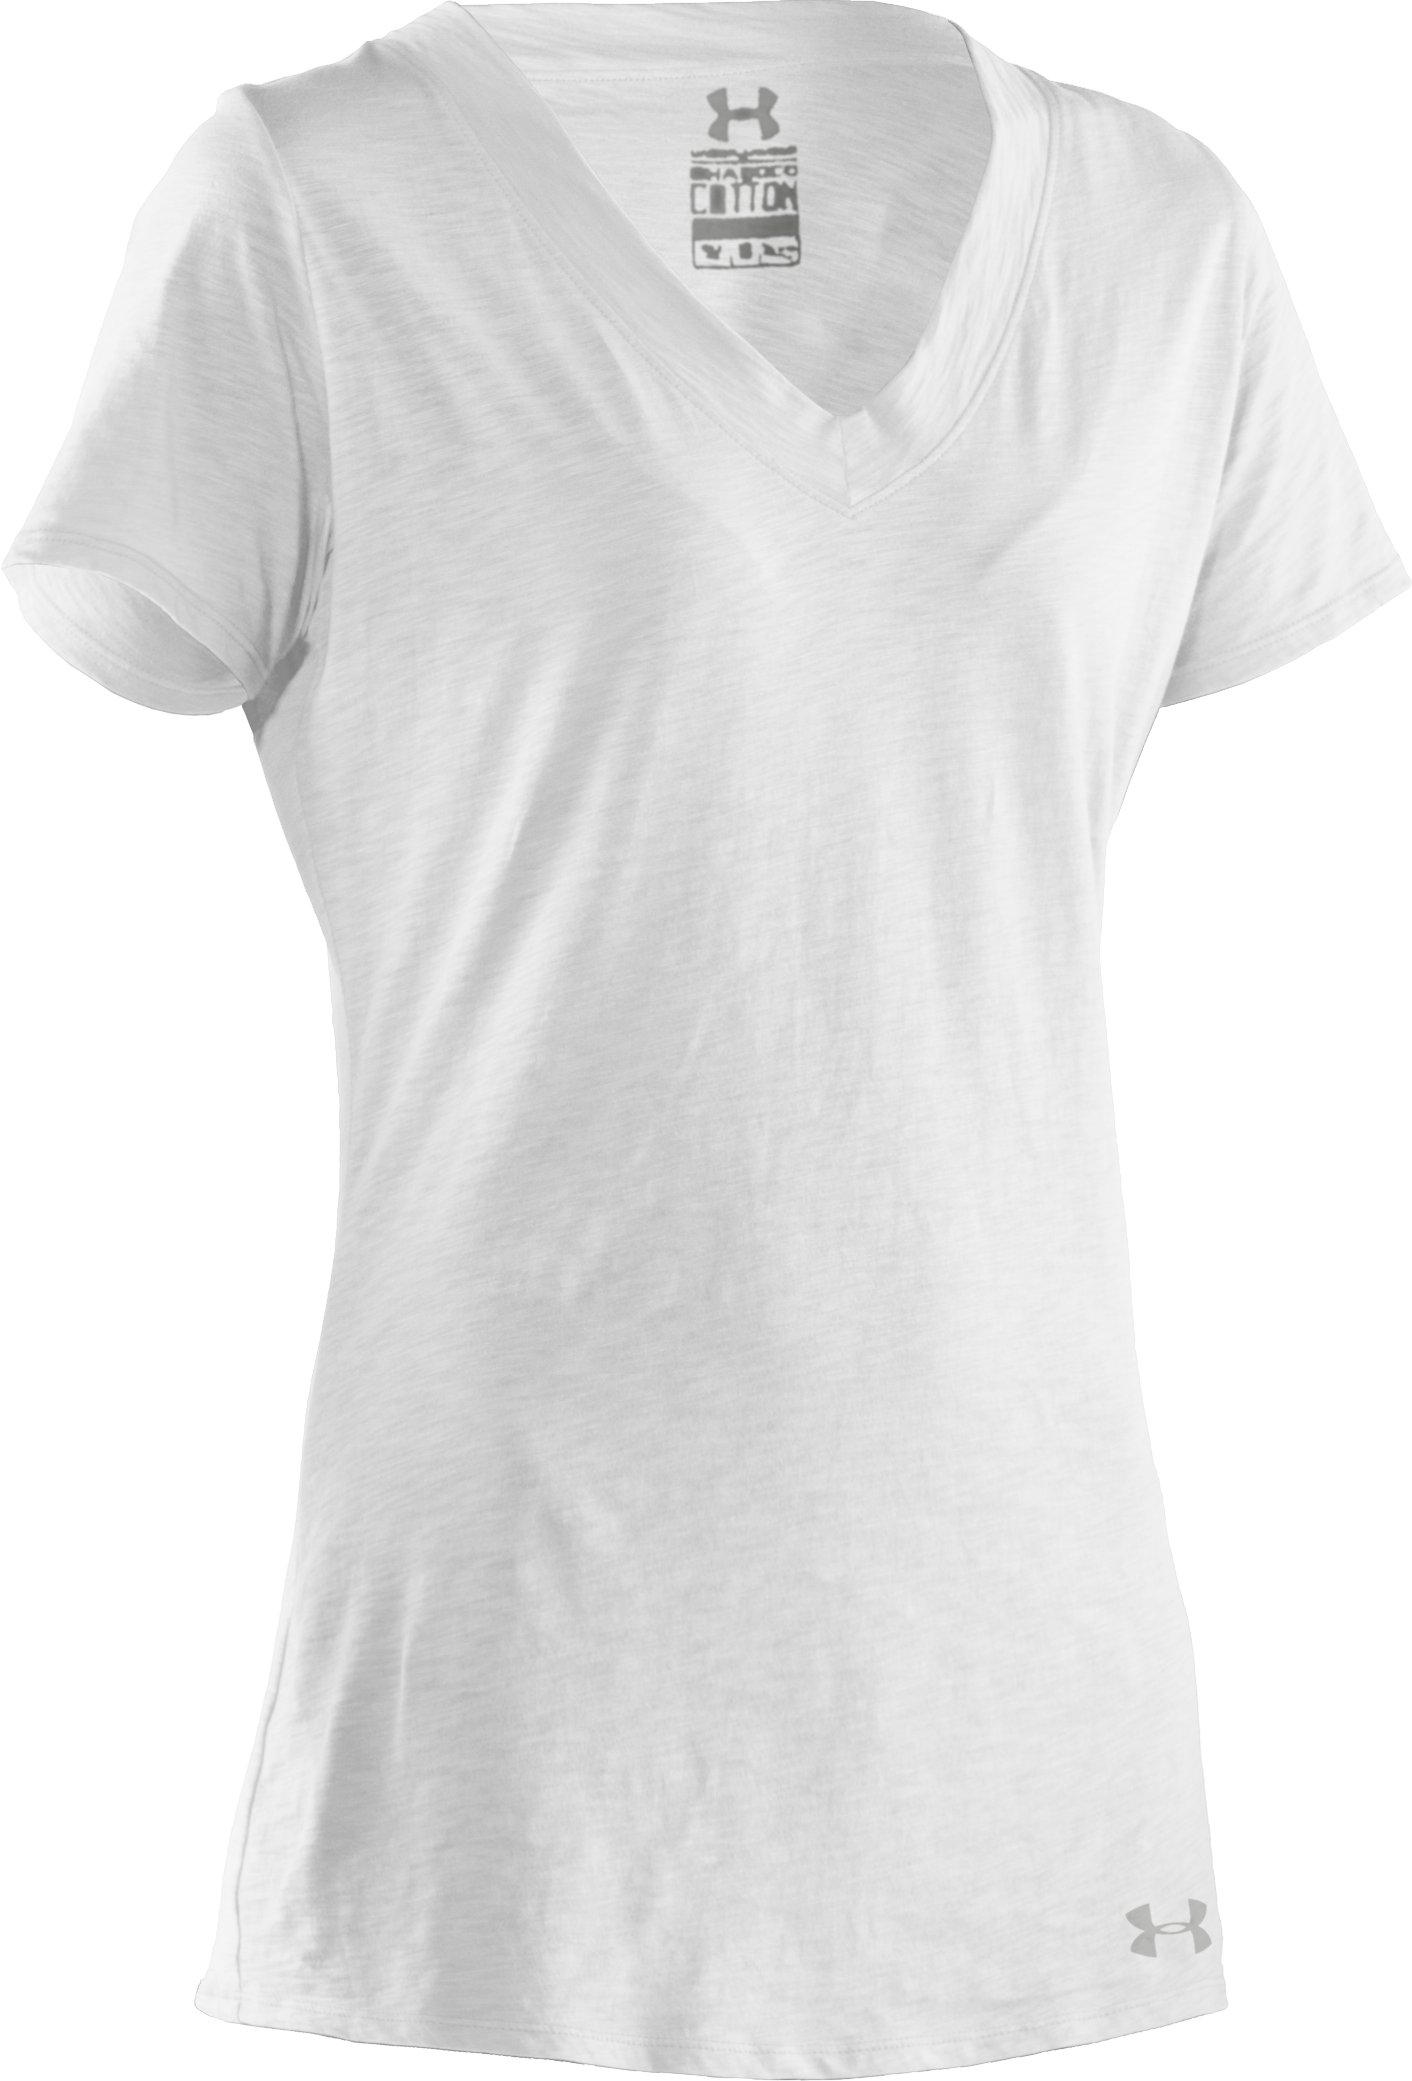 Women's Charged Cotton® Slub T-Shirt, White